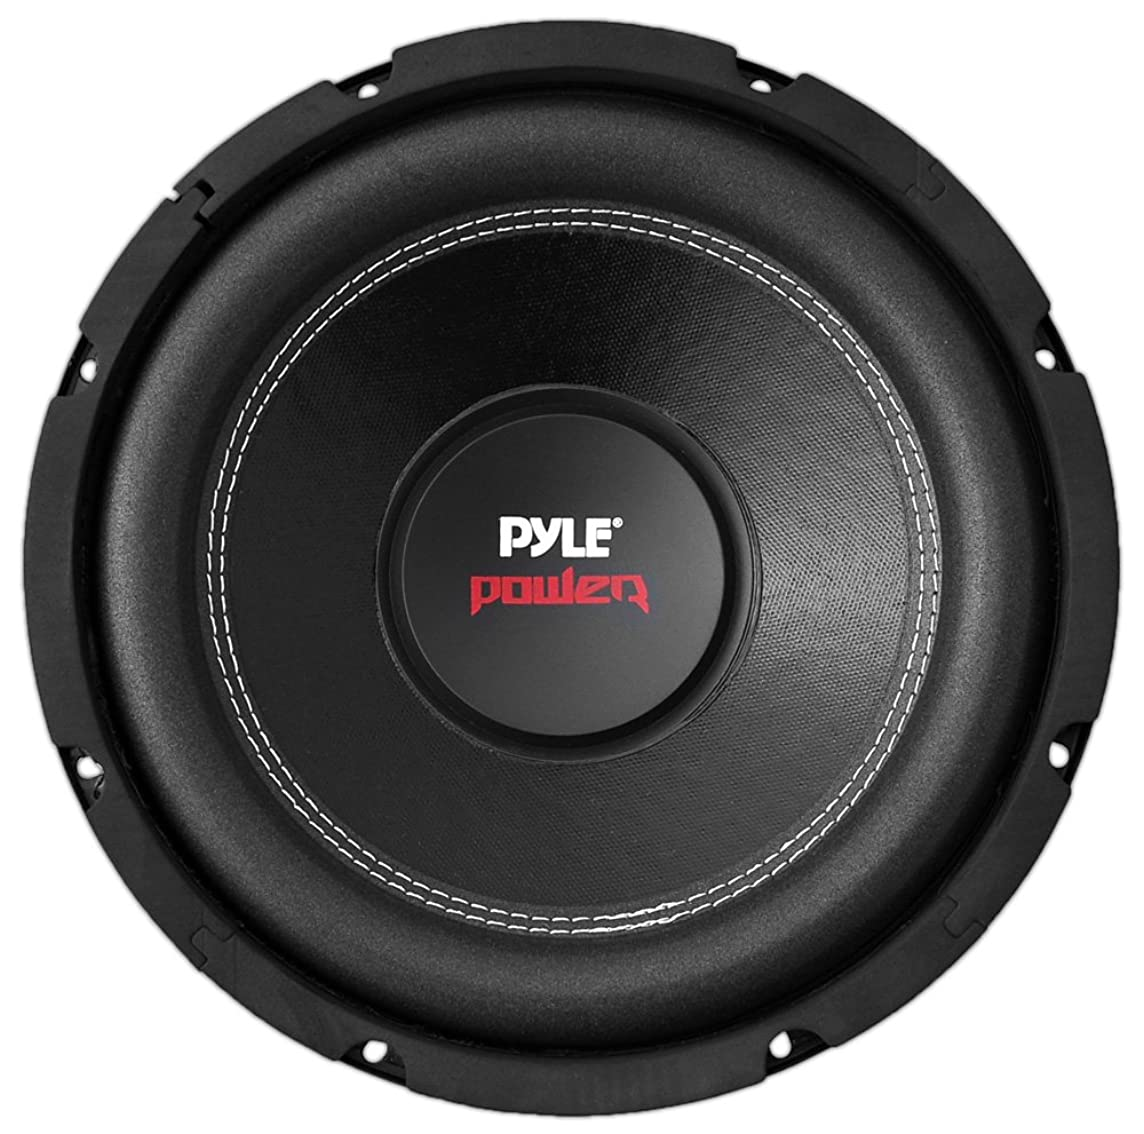 Pyle Car Subwoofer Audio Speaker - 8in Non-Pressed Paper Cone, Black Steel Basket, Dual Voice Coil 4 Ohm Impedance, 800 Watt Power and Foam Surround for Vehicle Stereo Sound System - PLPW8D